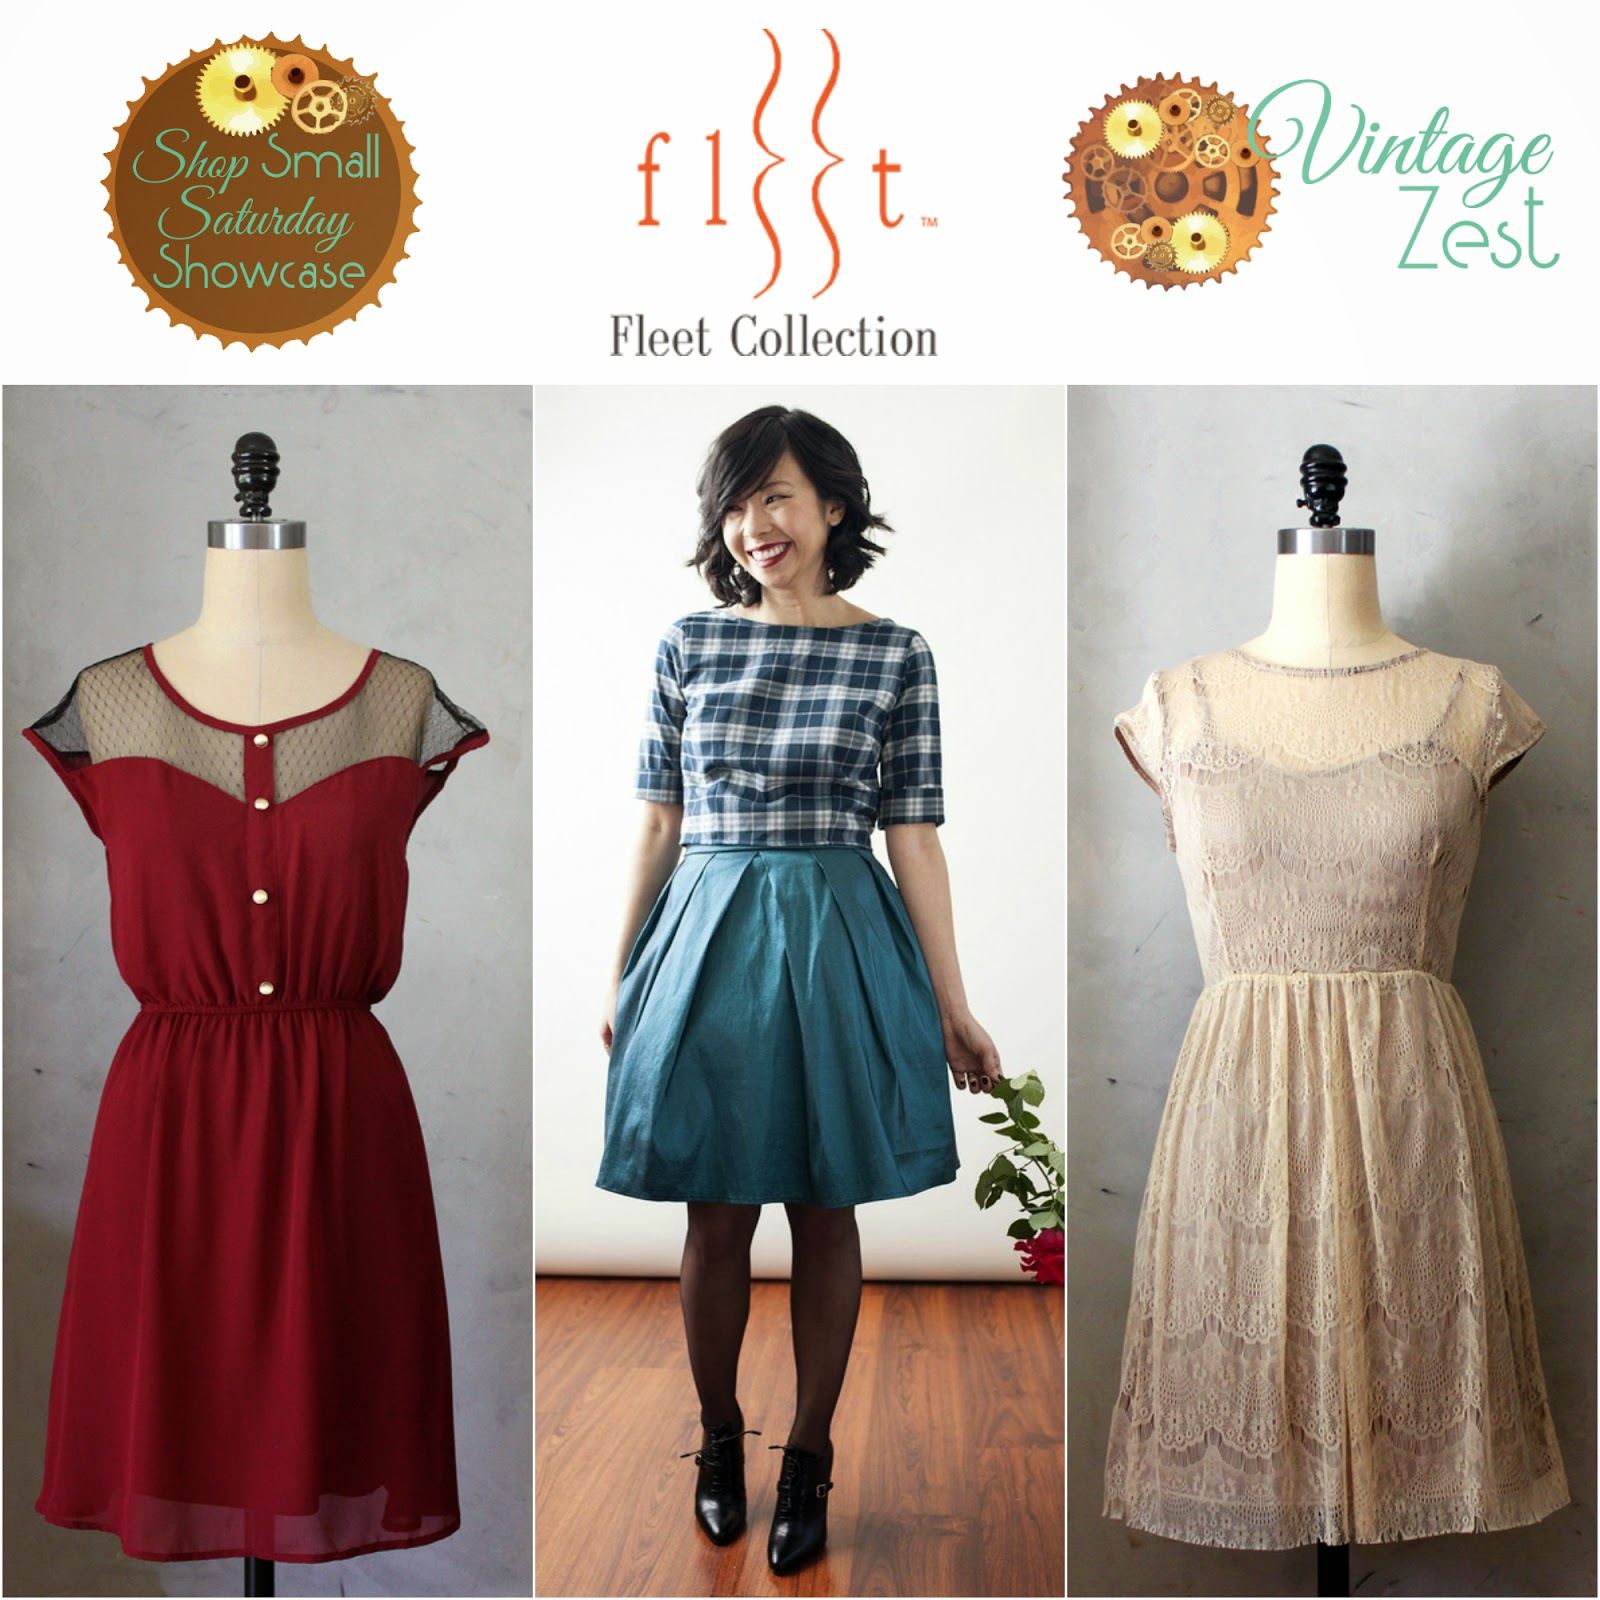 Fleet Collection feature on Shop Small Saturday Showcase at Diane's Vintage Zest!